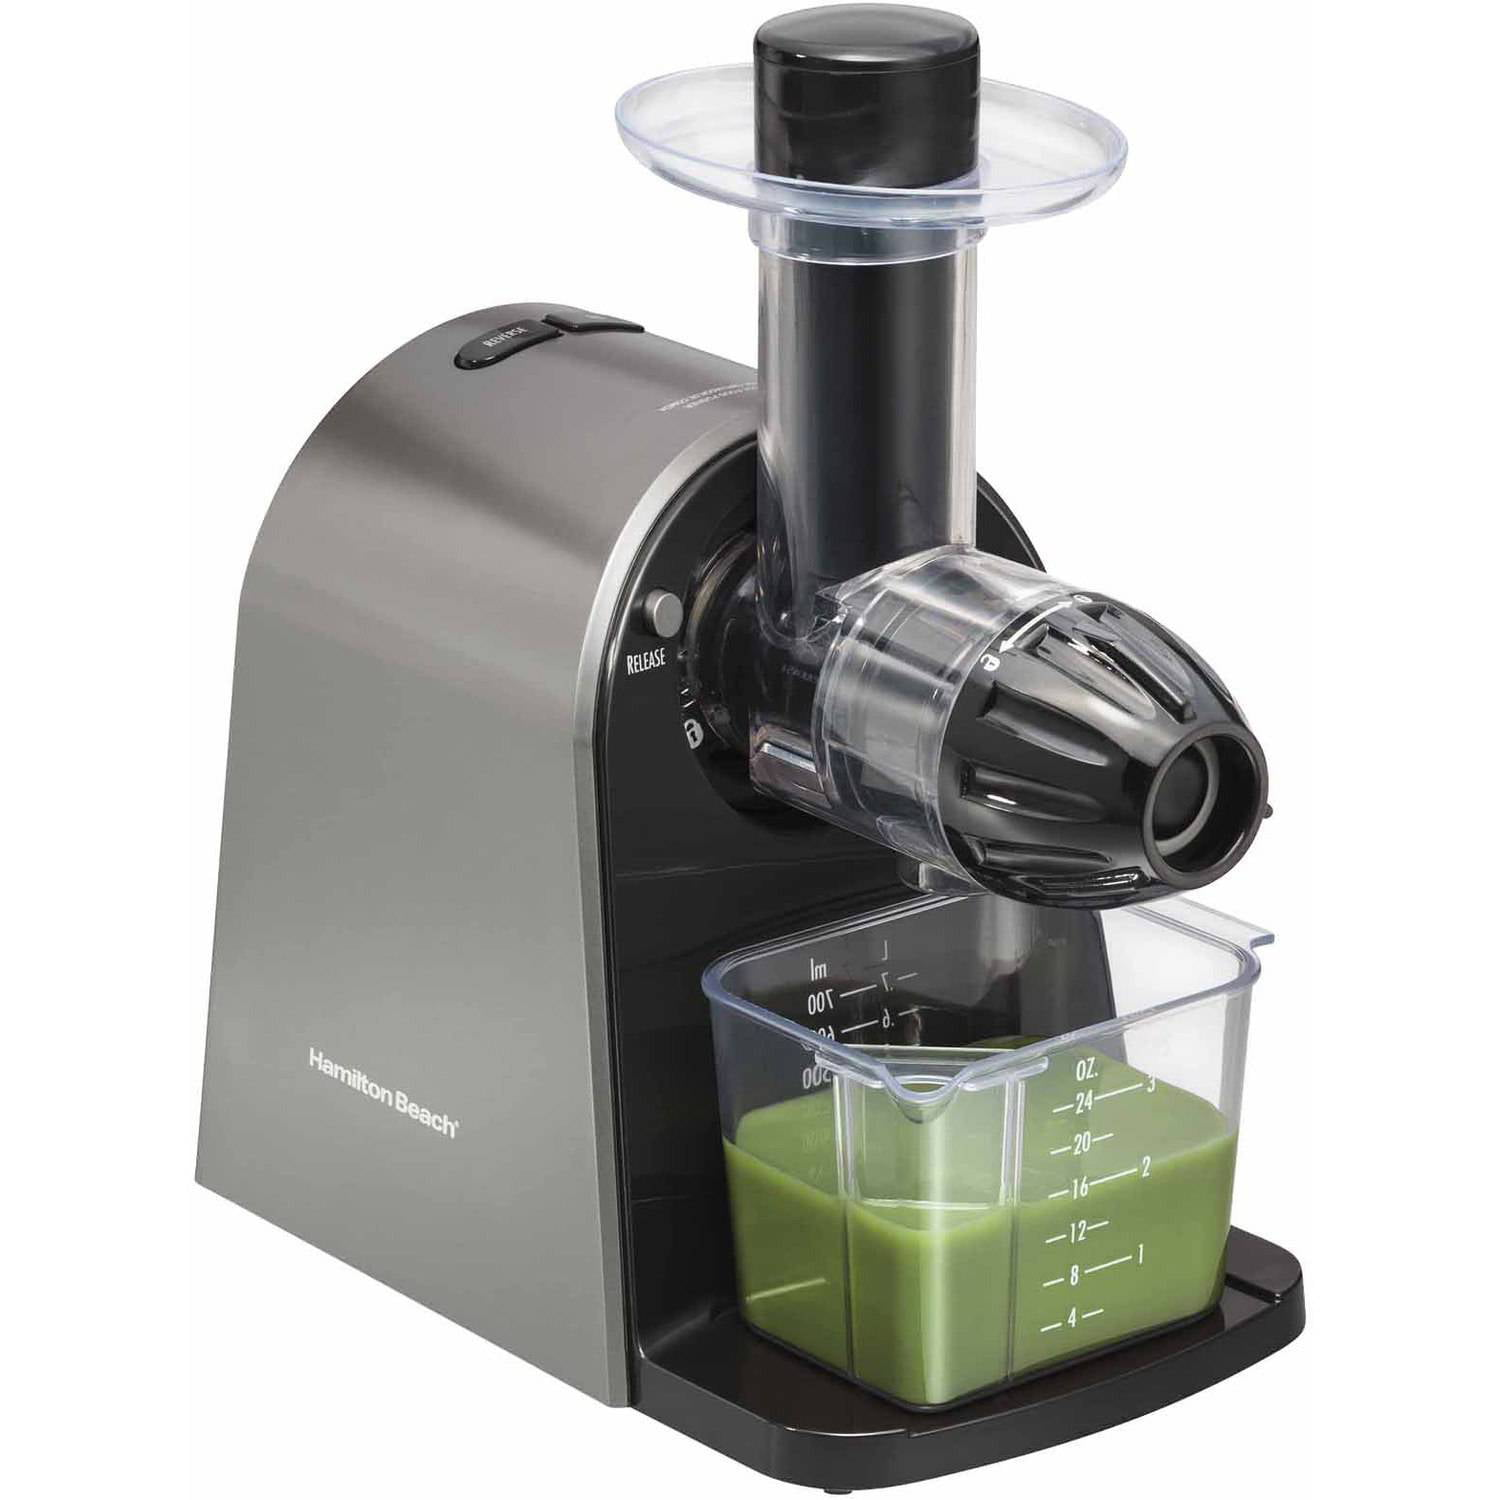 Slow Juicer Images : Cold Press Juicer Machine - Masticating Juicer Slow Juice ...